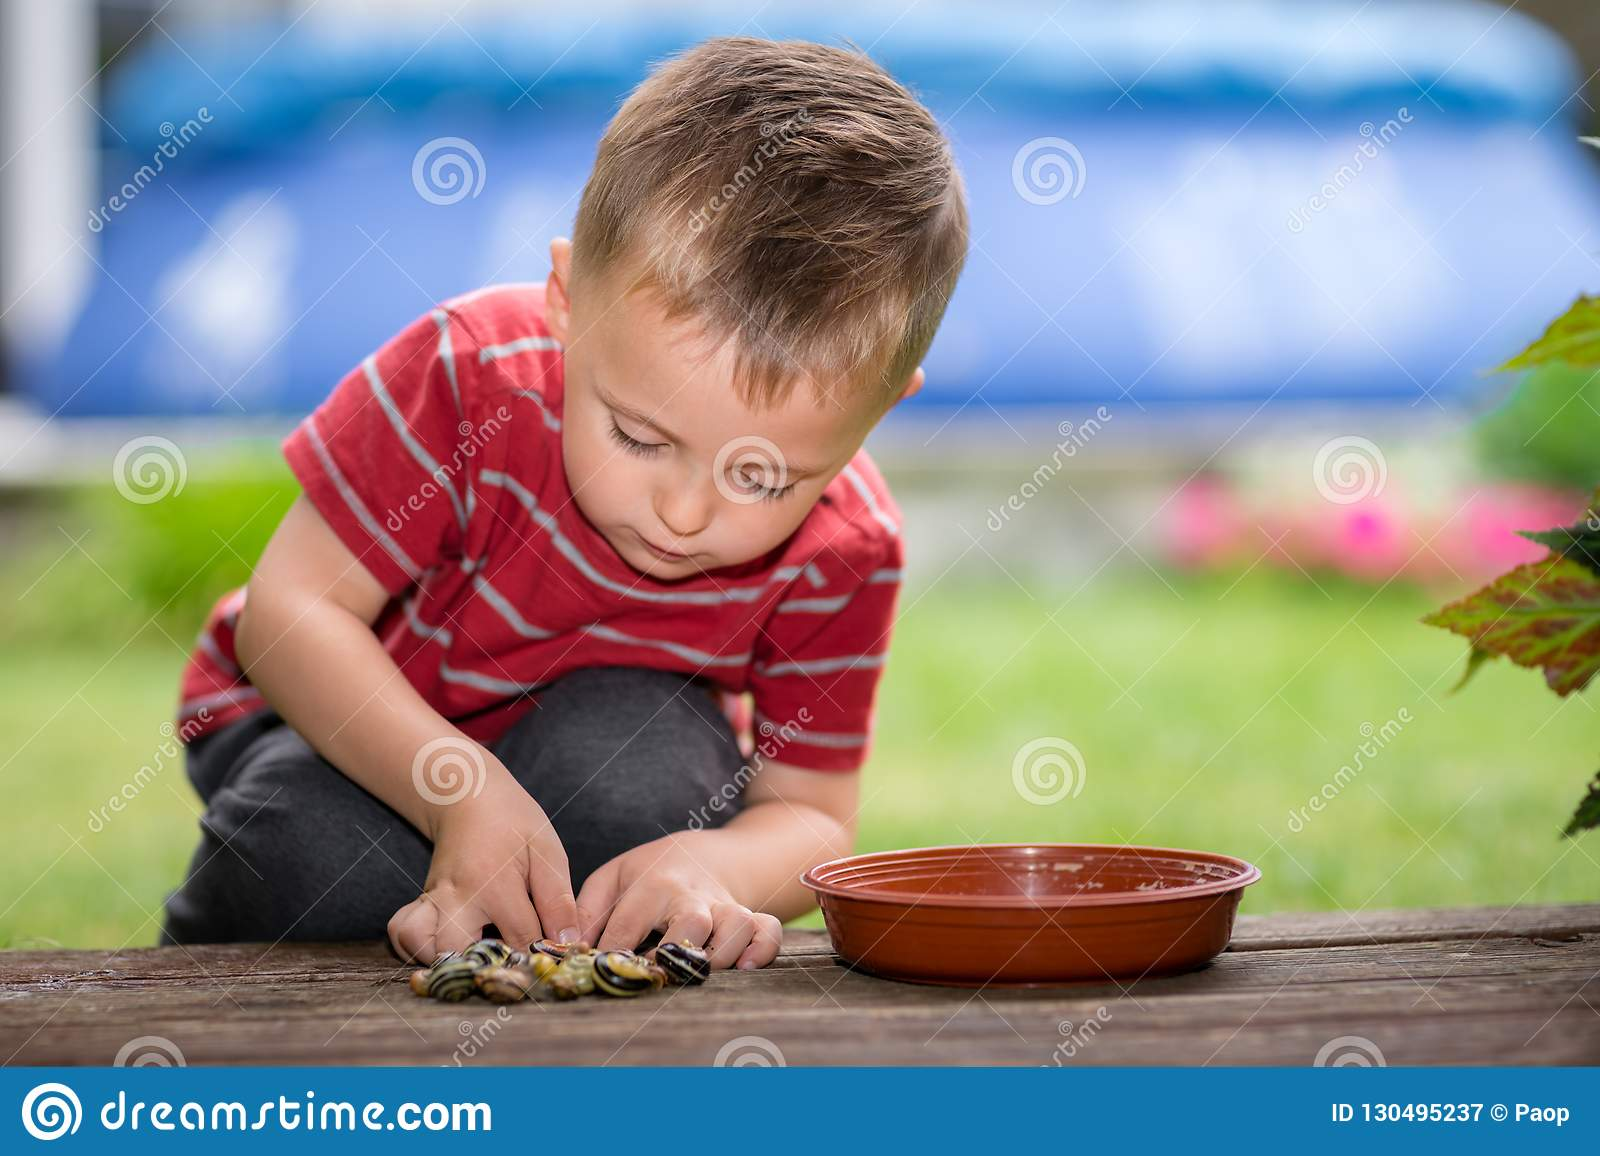 Little boy playing with snails